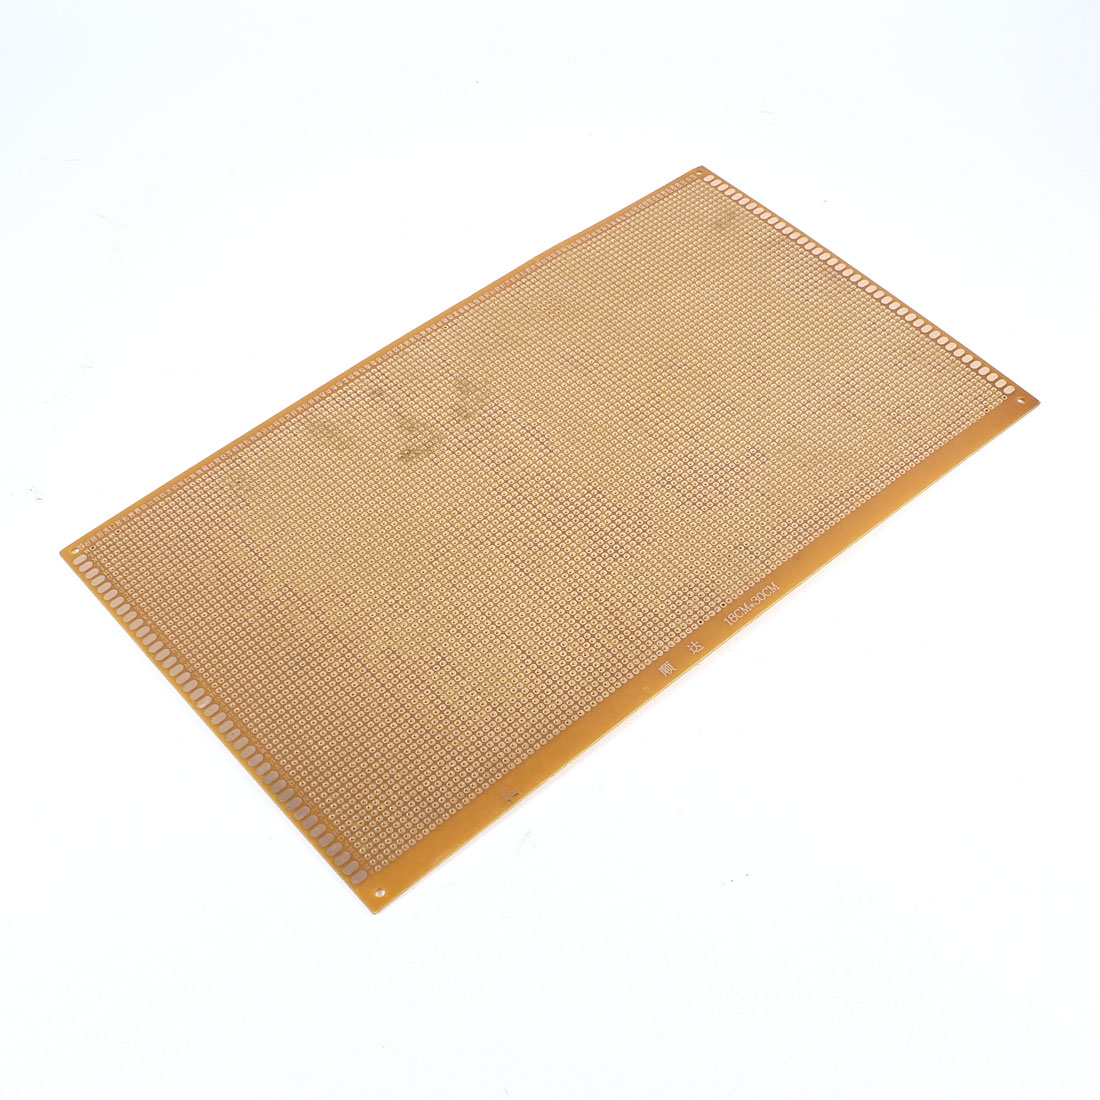 FR-4 Experiment Single Side DIY Prototype Paper PCB Universal Board Breadboard 18x30cm